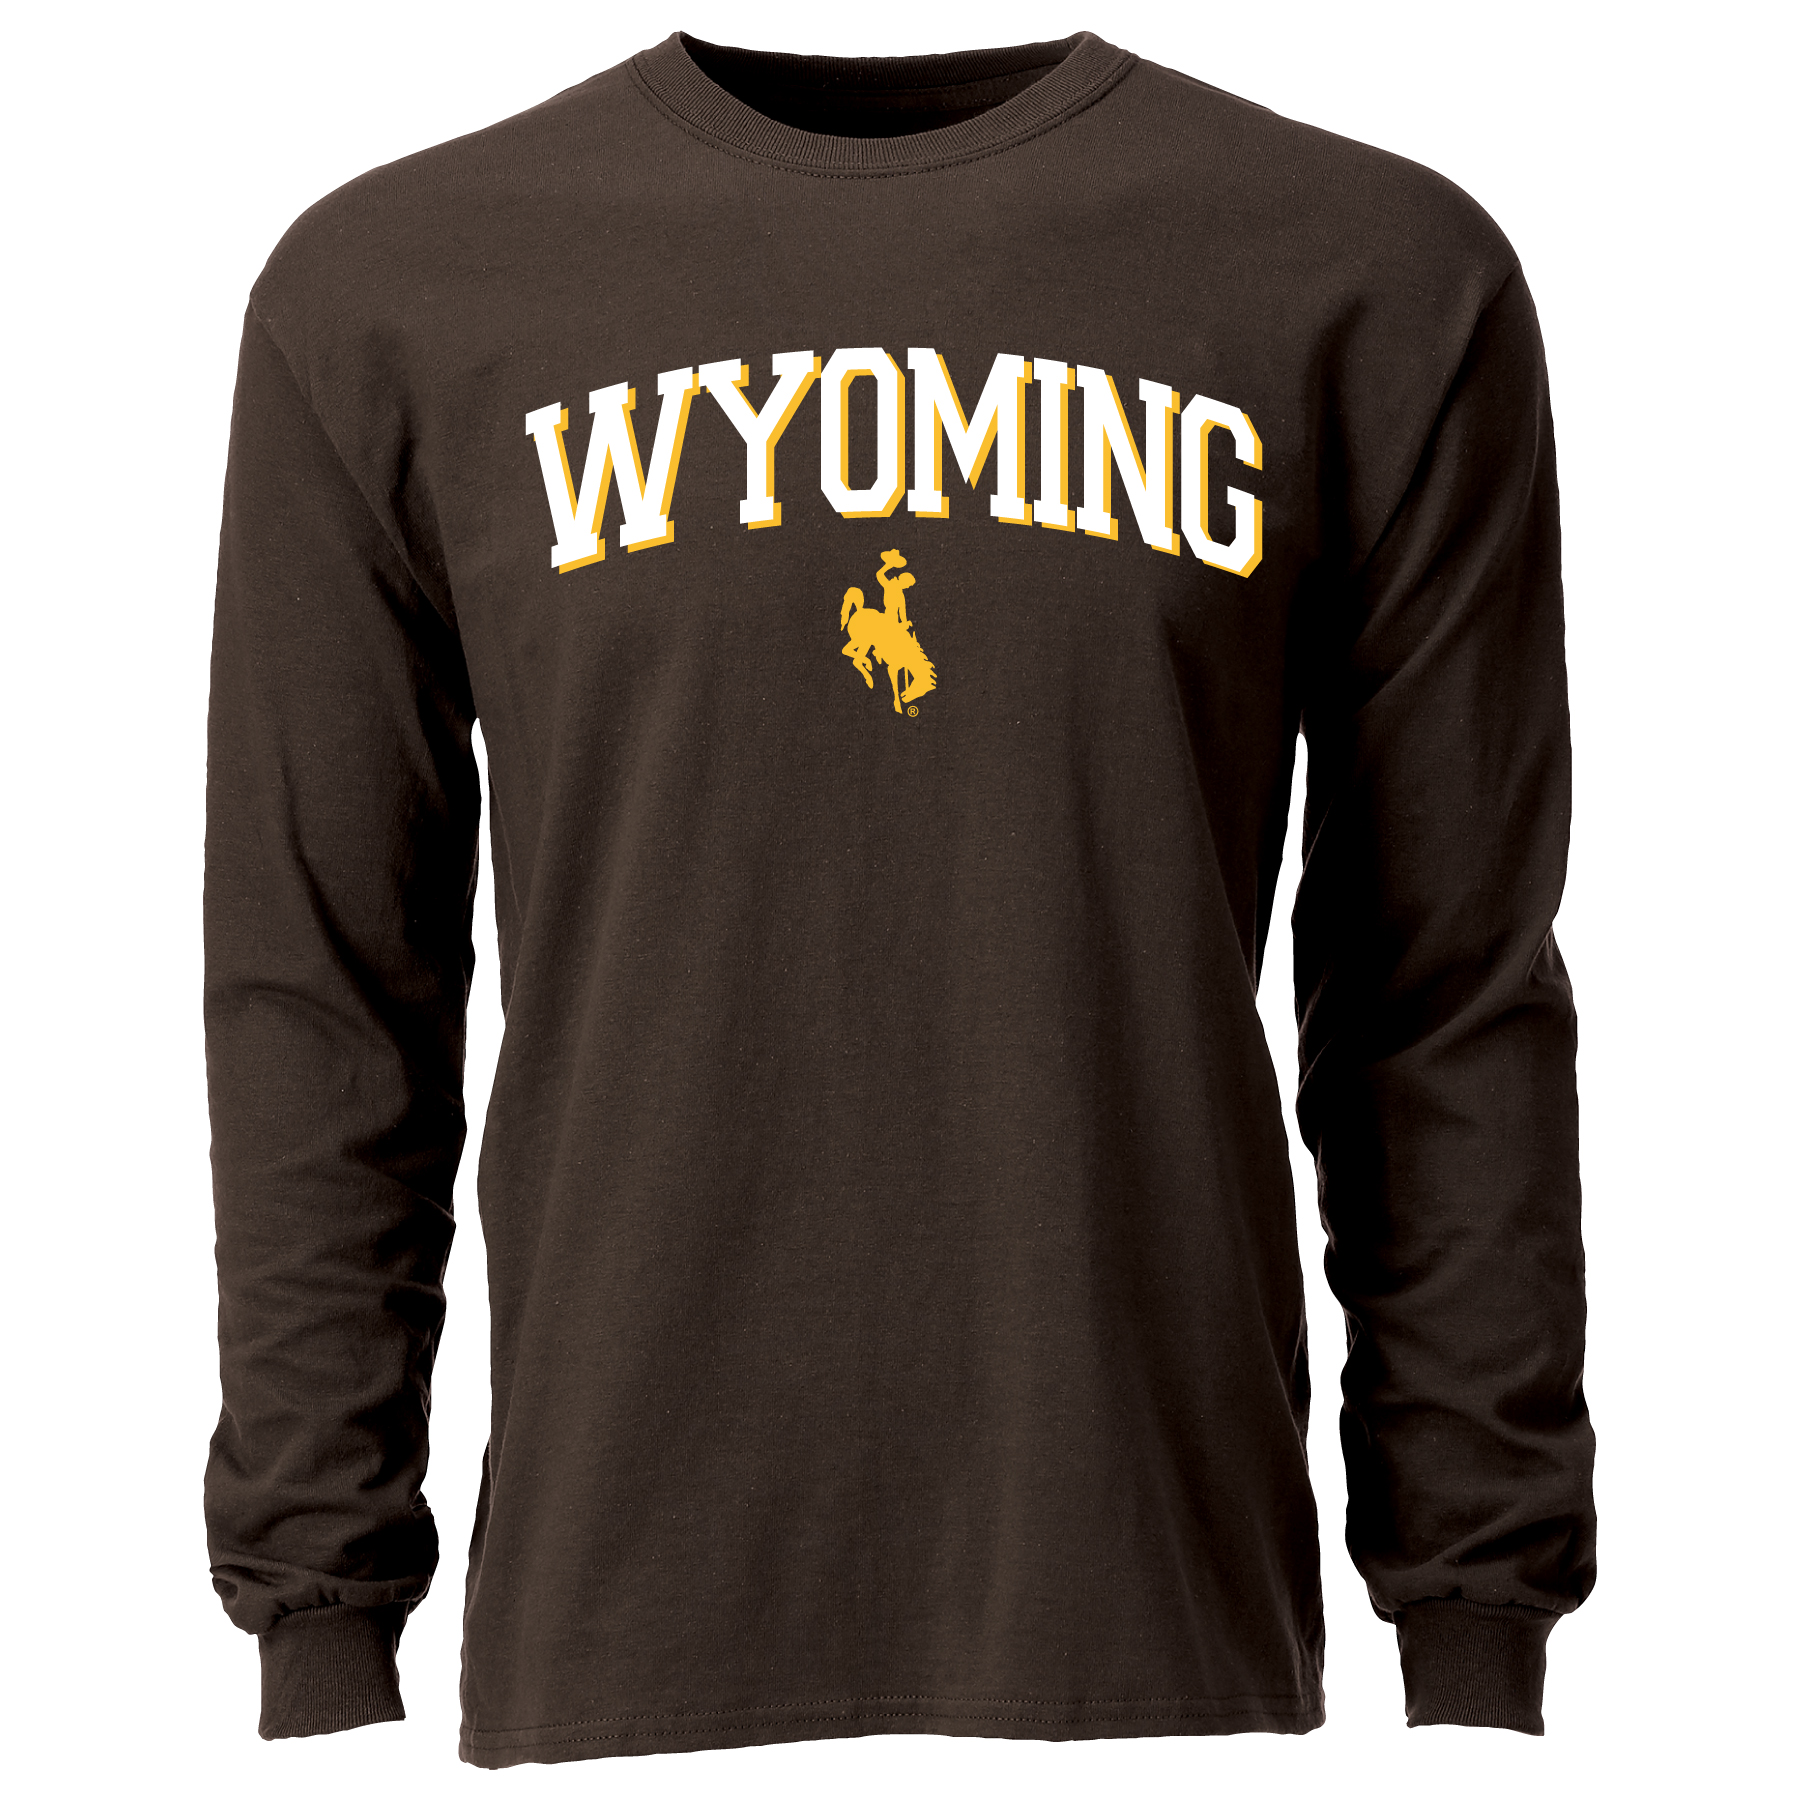 Wyoming Long Sleeve Tee